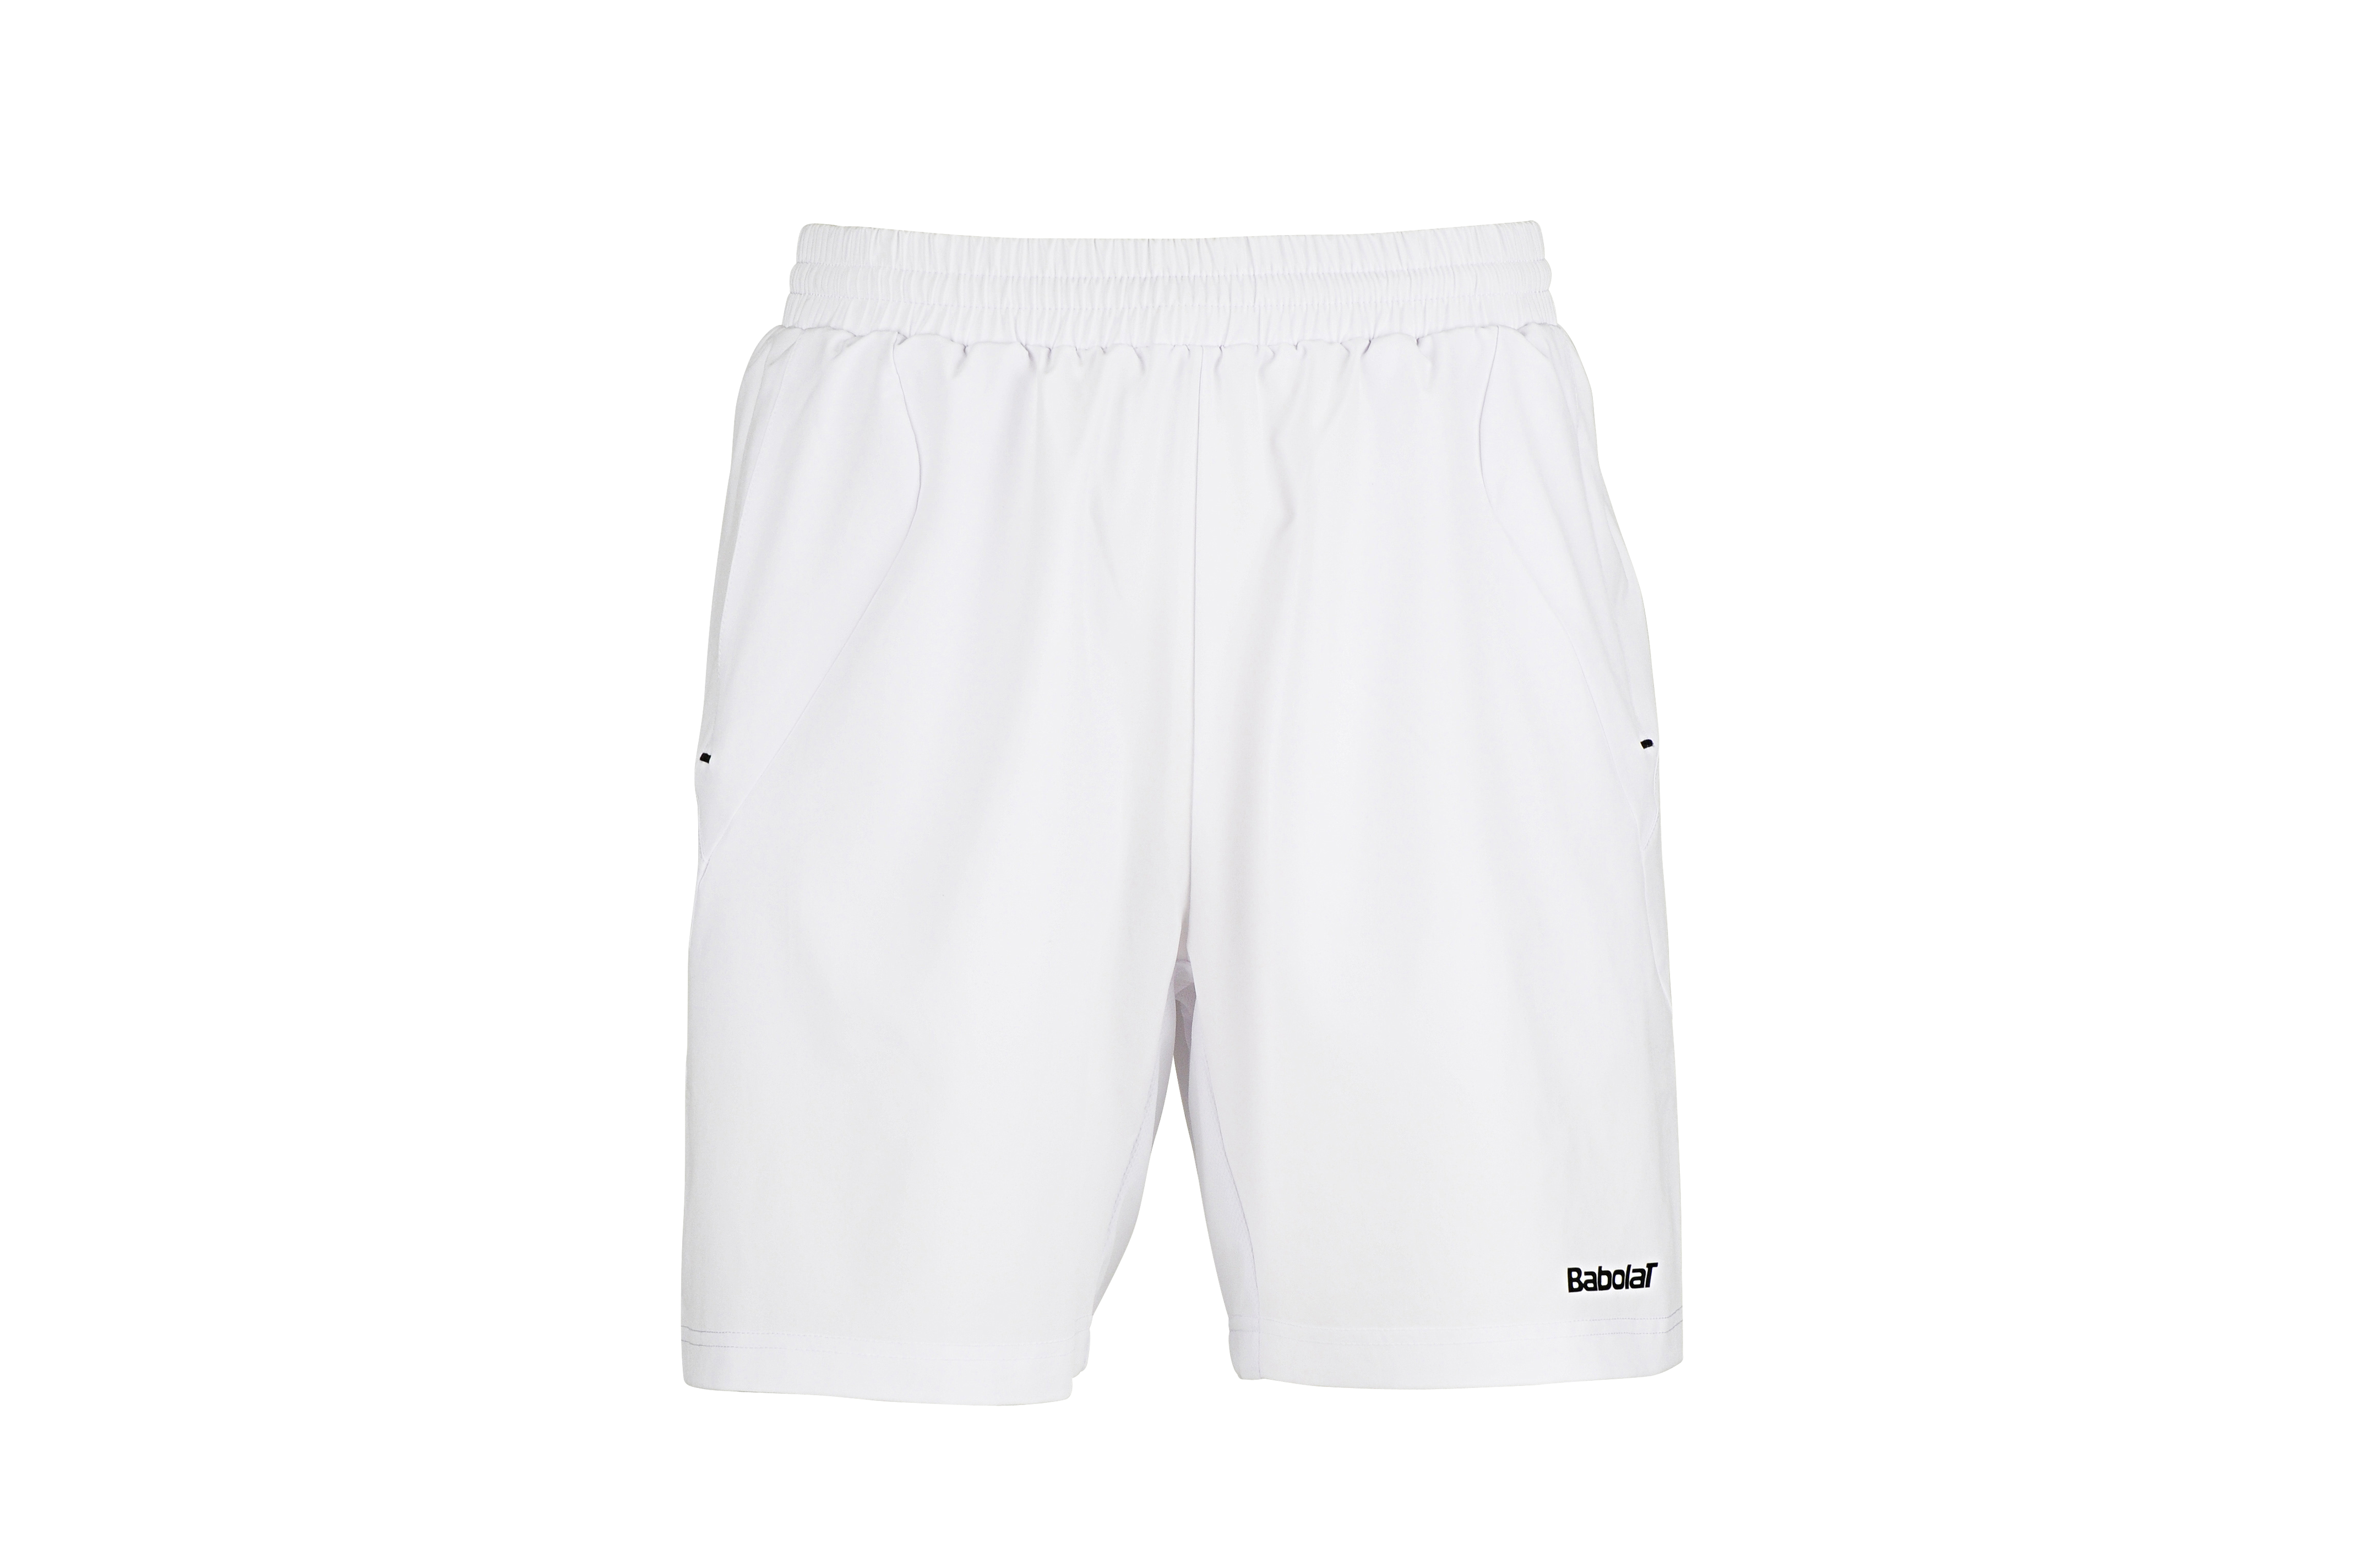 Babolat Short Homme White Face Pure Racket Sport